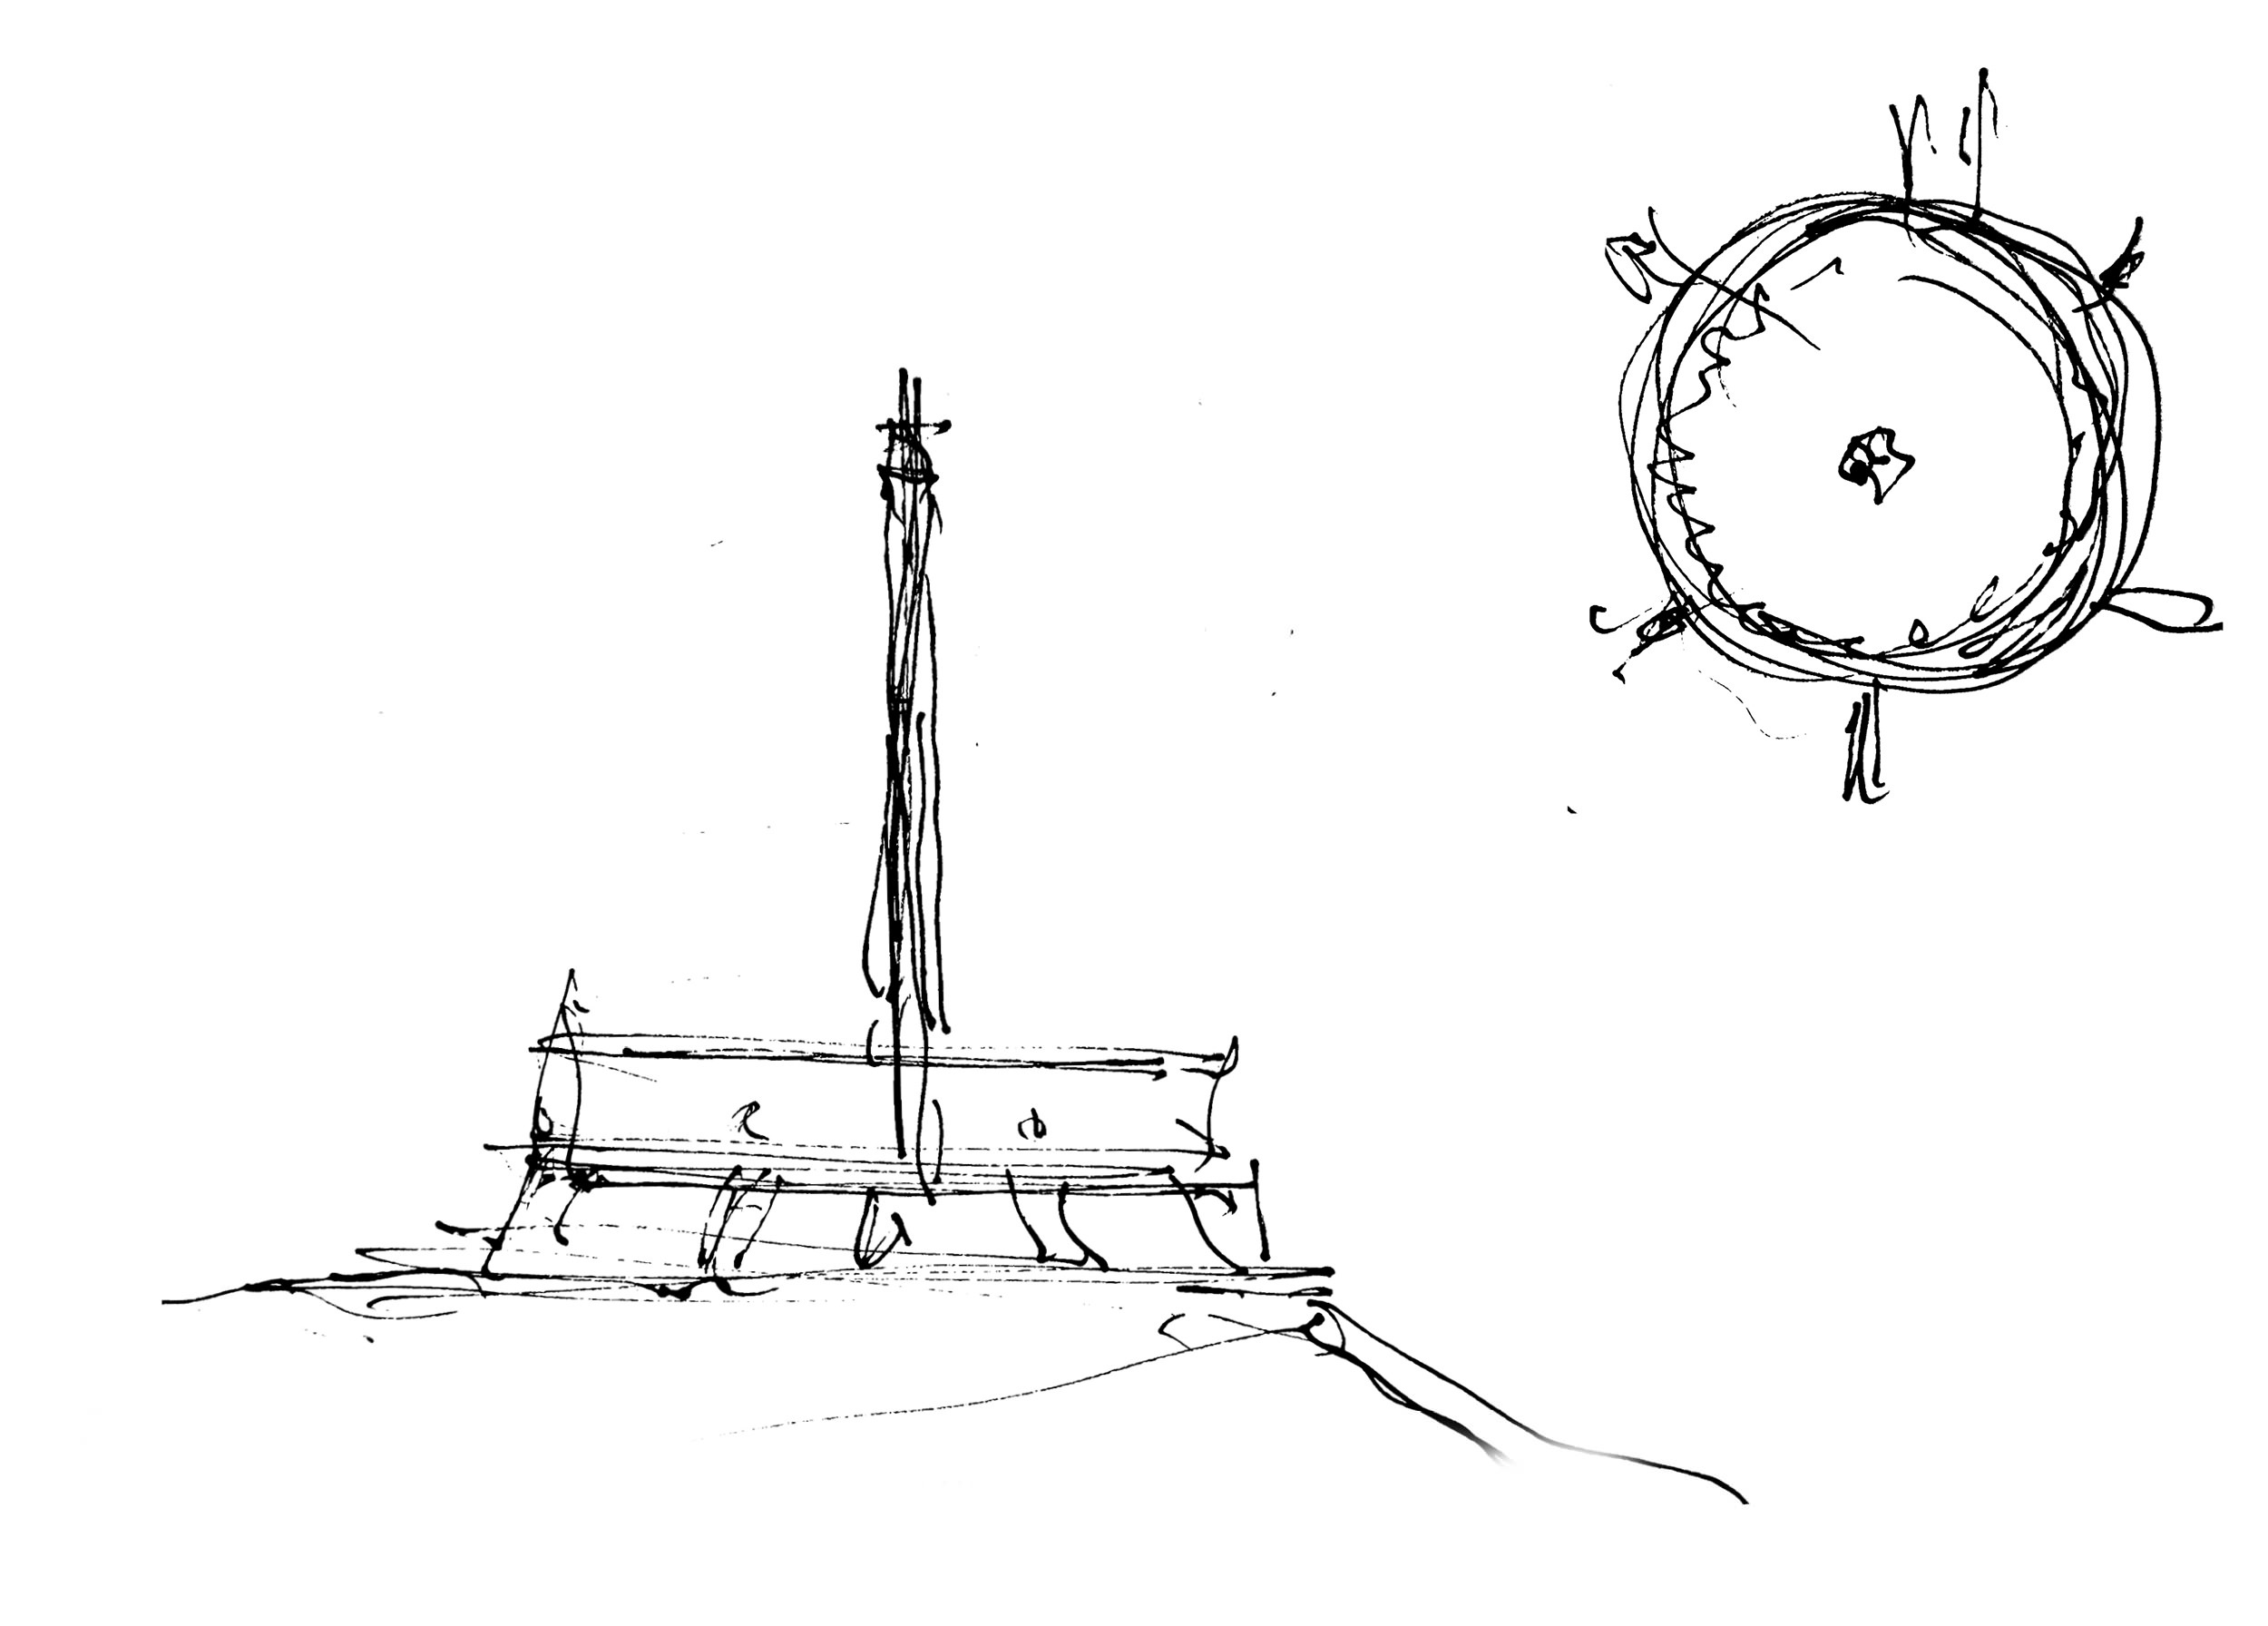 2. Georgi Stoilov wins the contest with his design for a ring on six columns, around a tower bearing the star. (Sketch by architect Georgi Stoilov, 26th June 2014)